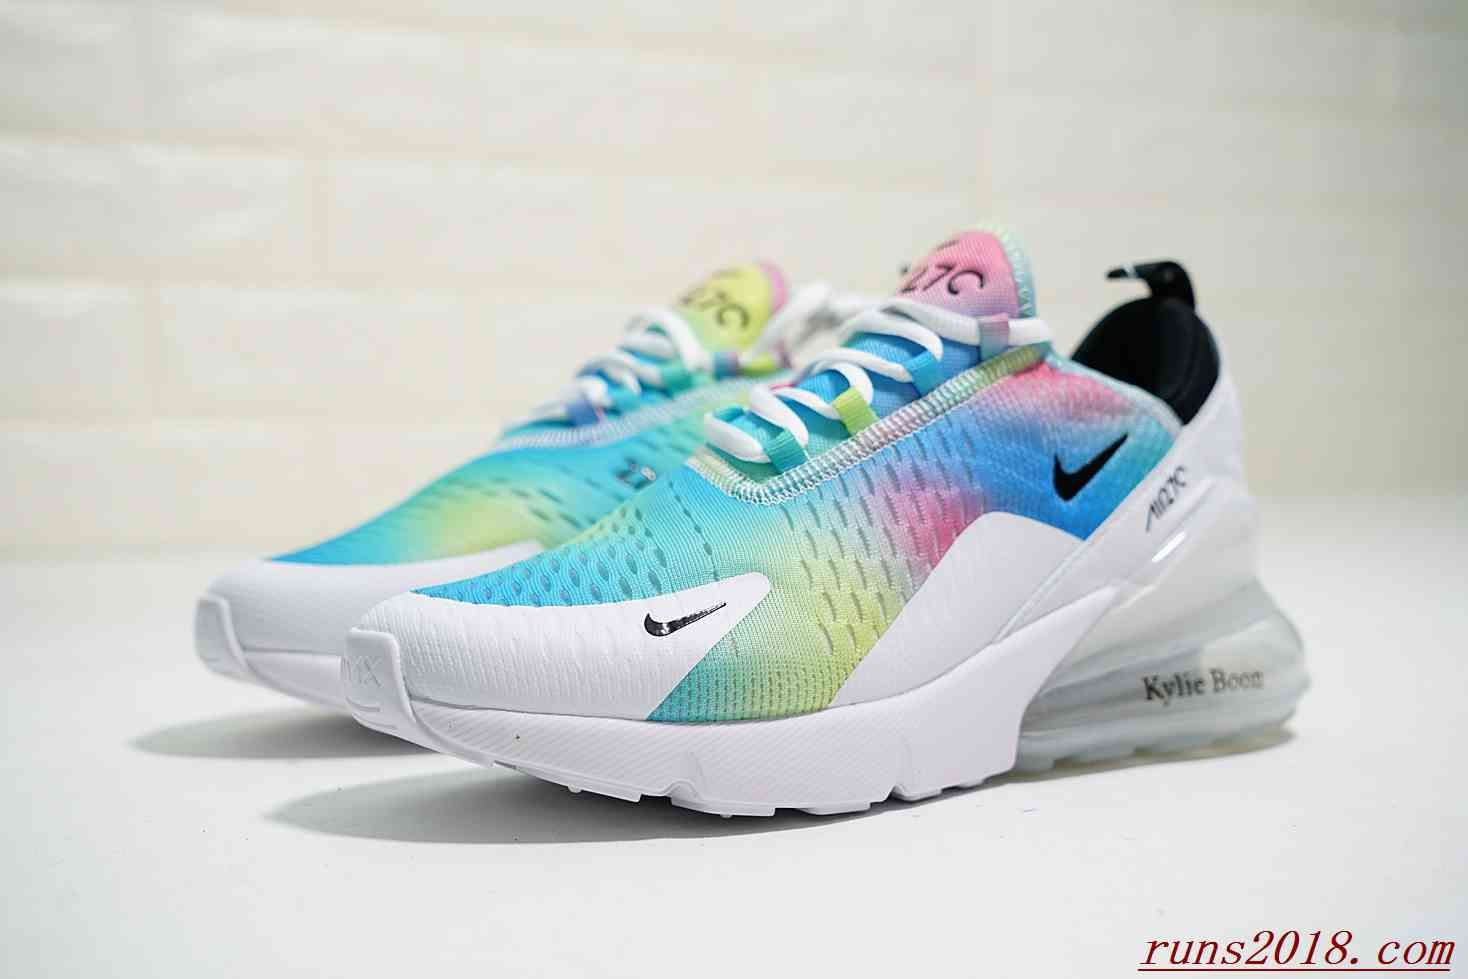 premium selection 0ec63 b45c7 NIKE AIR MAX 270 WOMEN WHITE RAINBOW LASER | shoes in 2019 ...